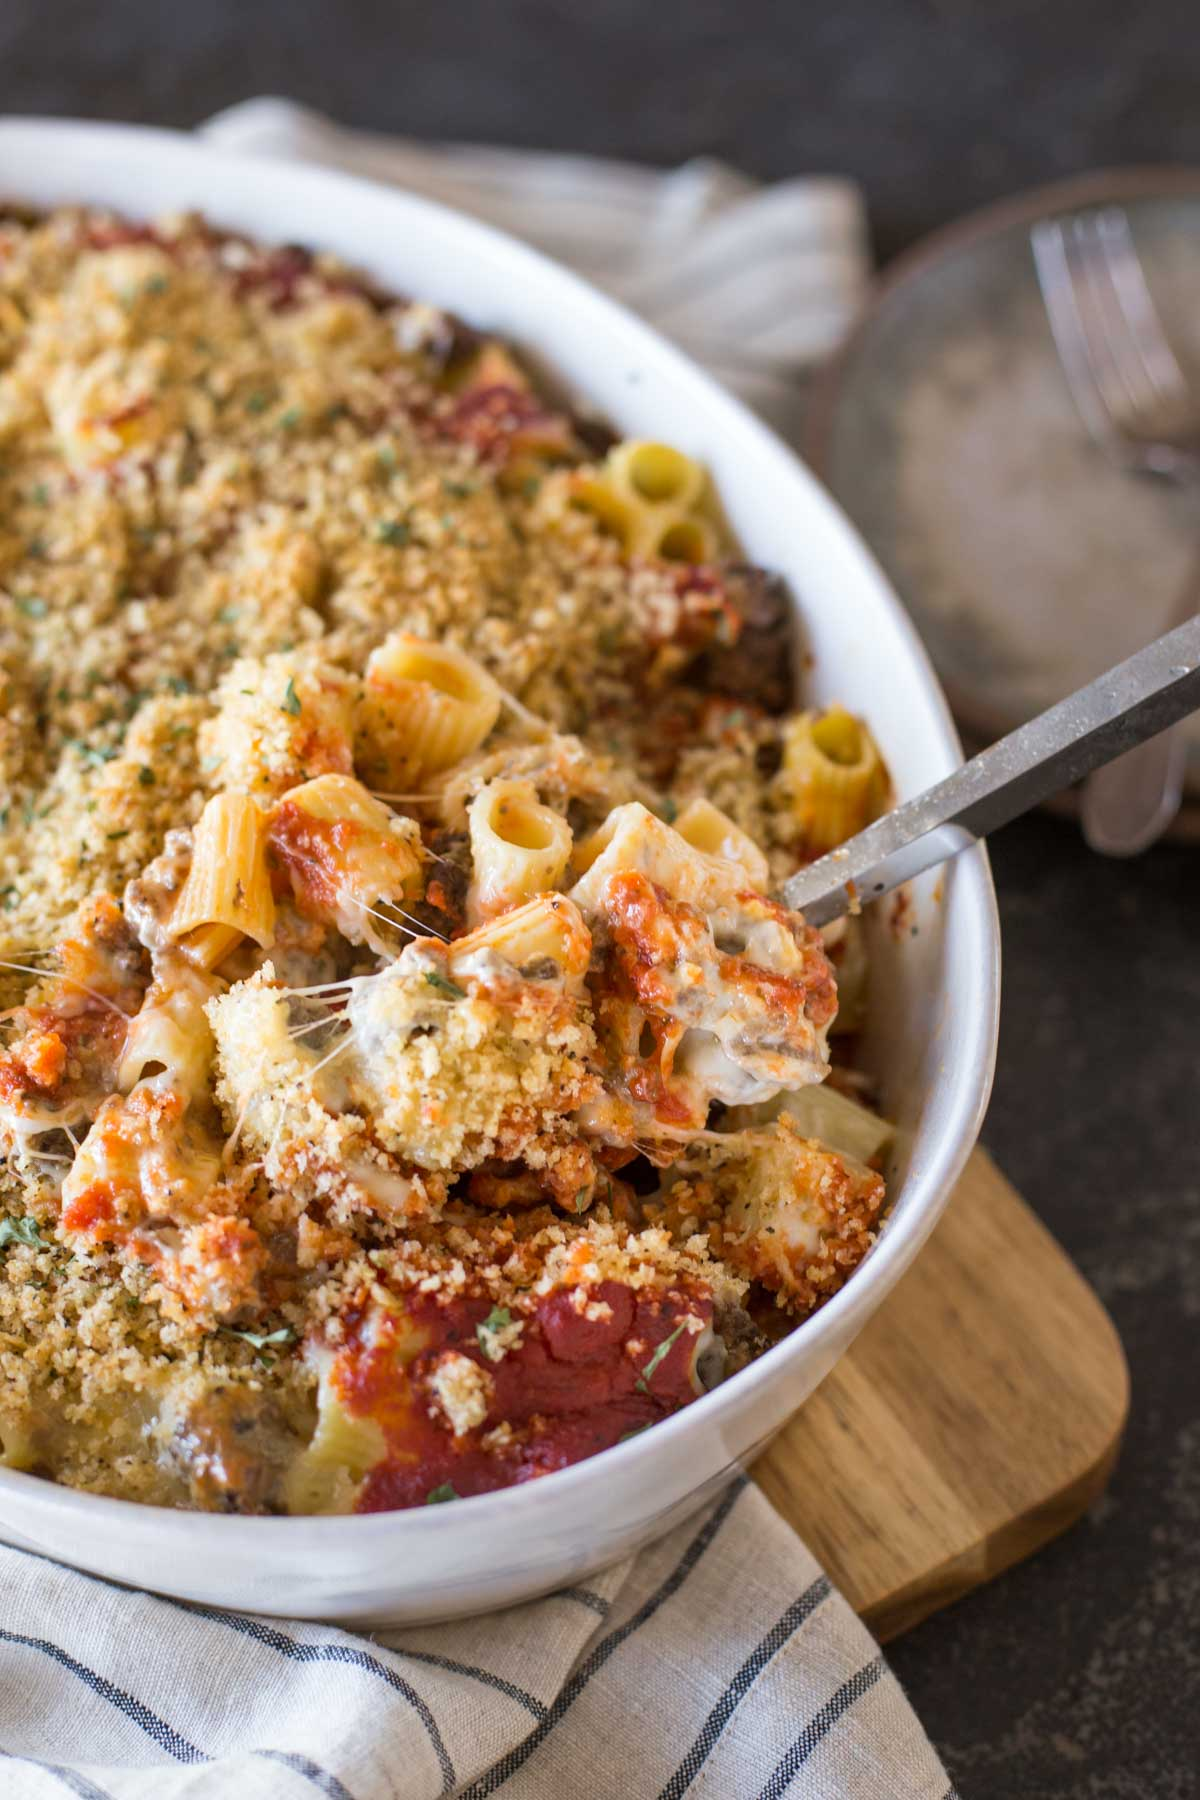 Cheesy Tomato Alfredo Pasta Bake in a baking dish.